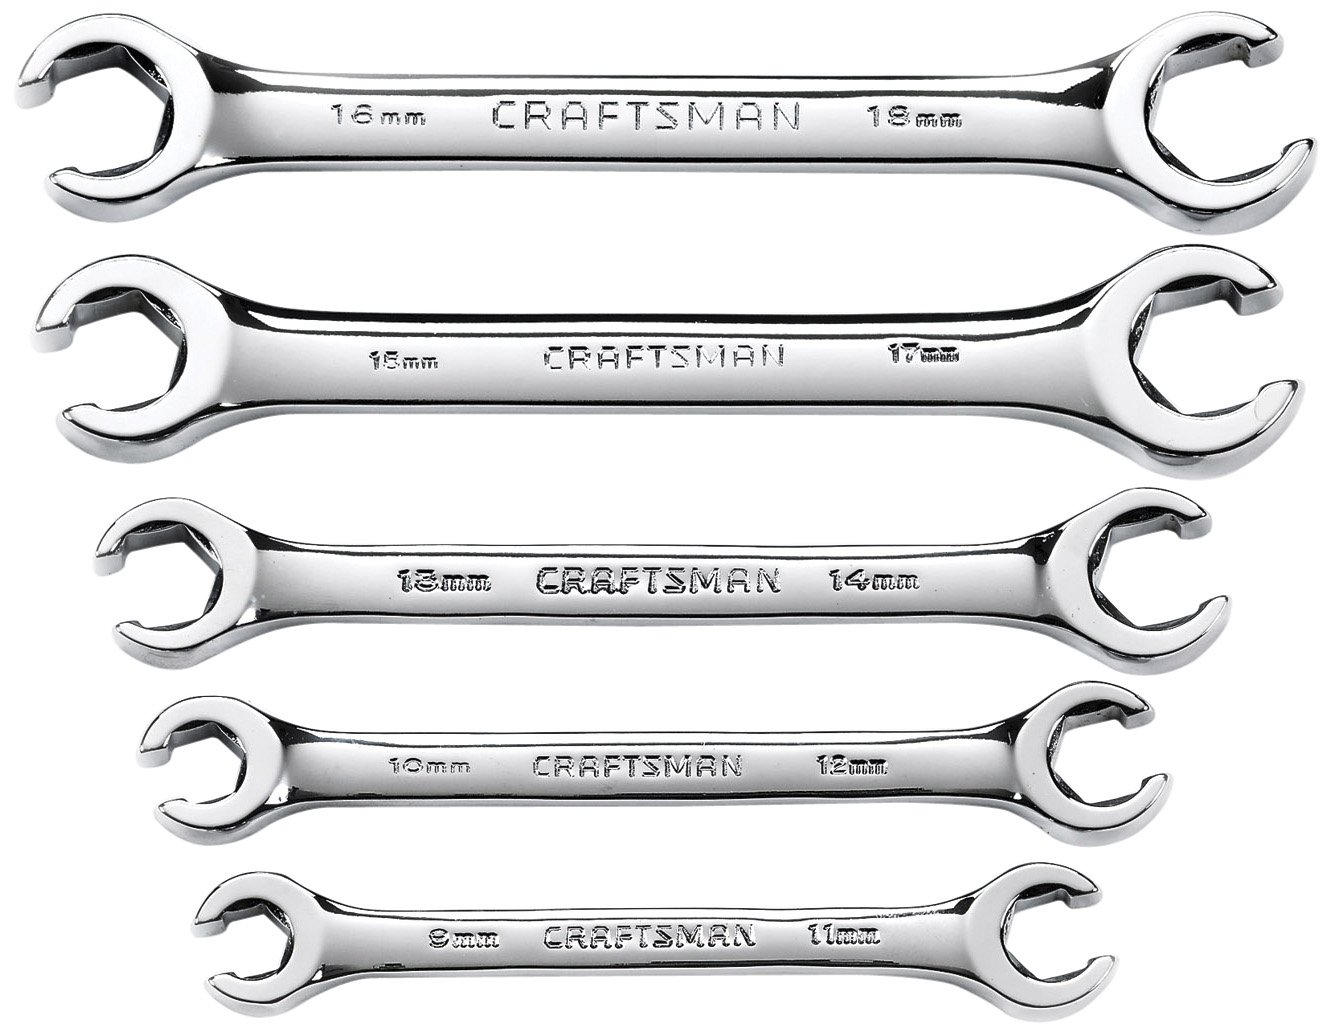 Craftsman Metric Flare Nut Wrench Set, 5-Piece, 9-42013 by Craftsman